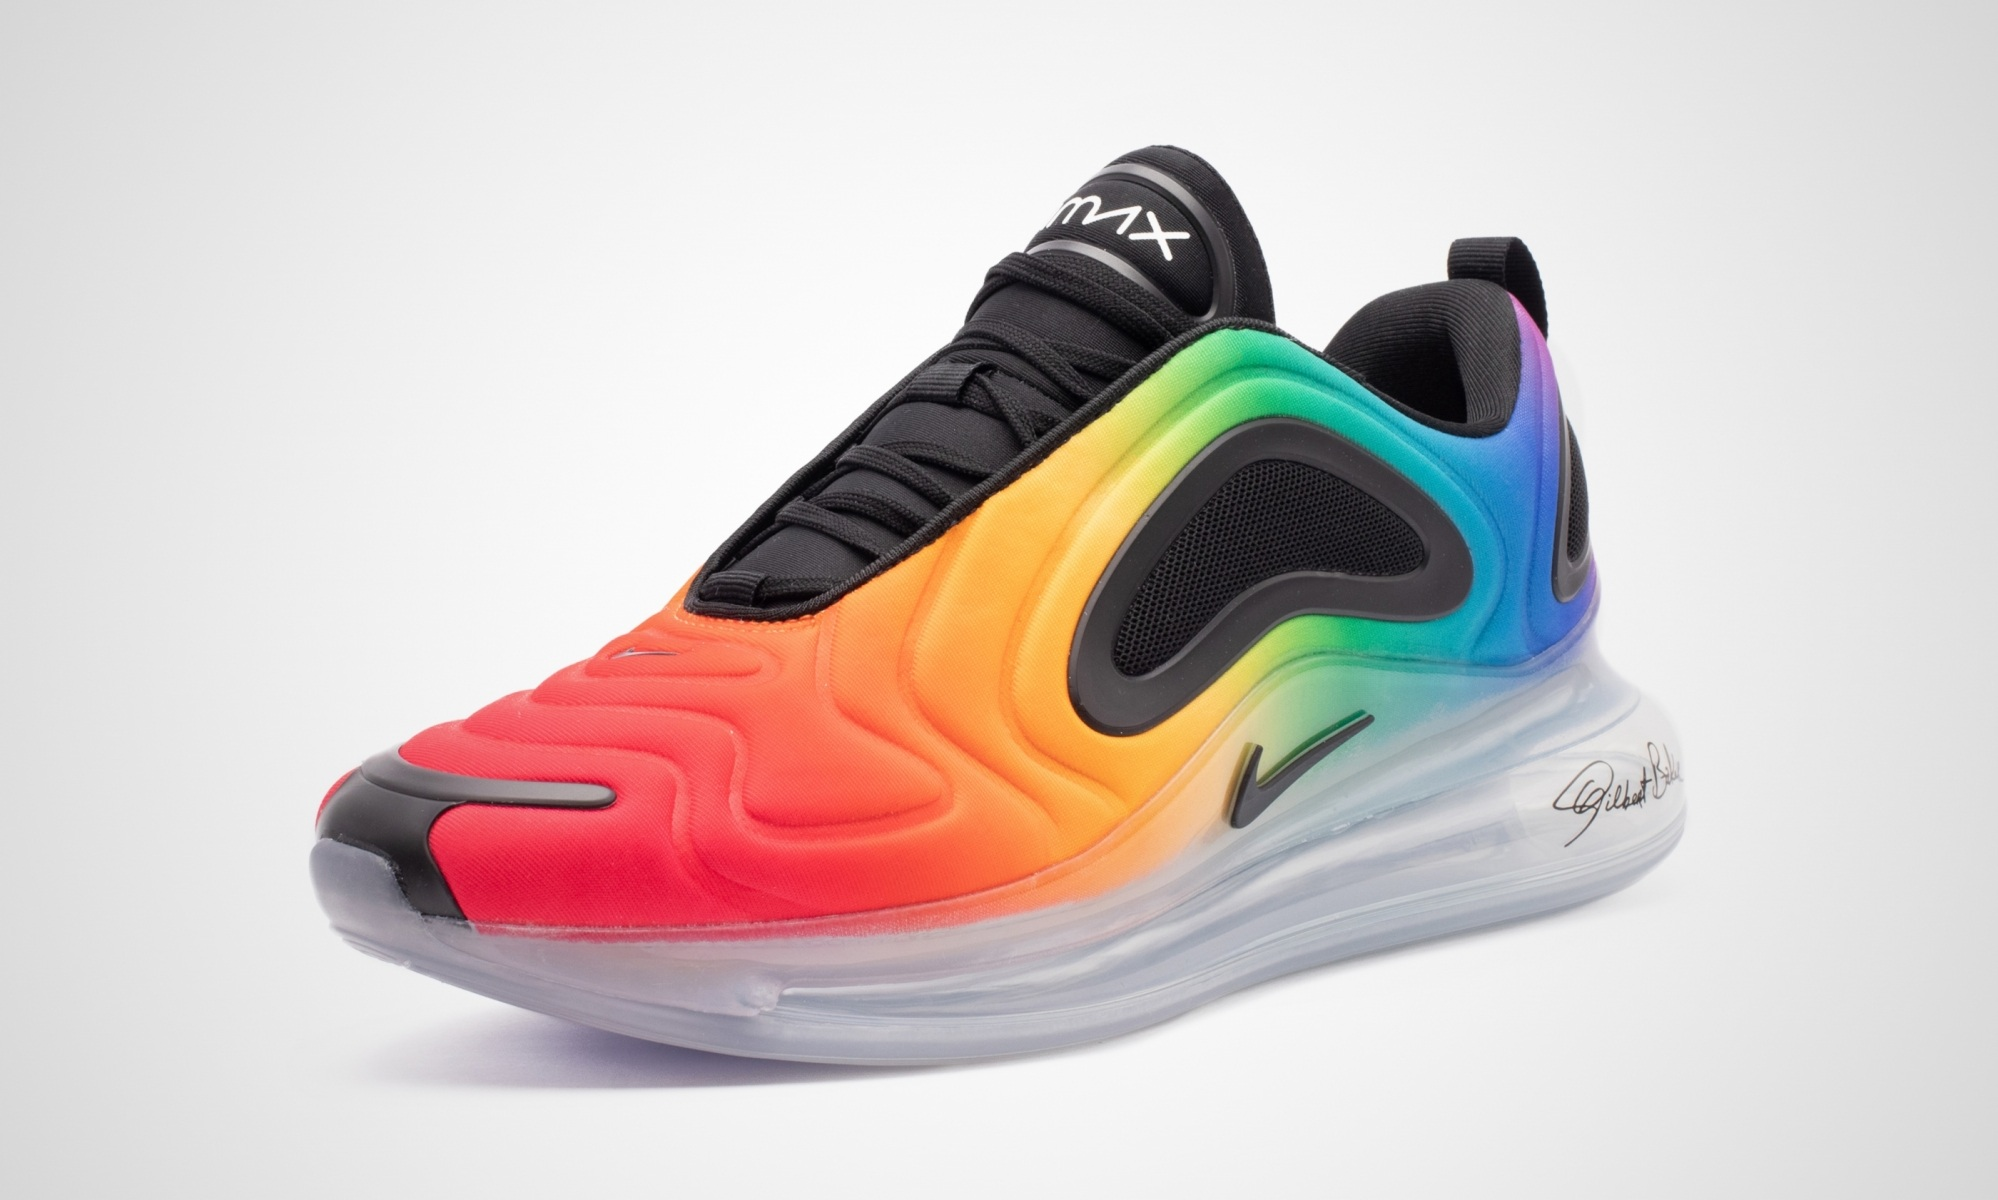 huge selection of new product 100% top quality Nike Air BETRUE Kollektion 2019